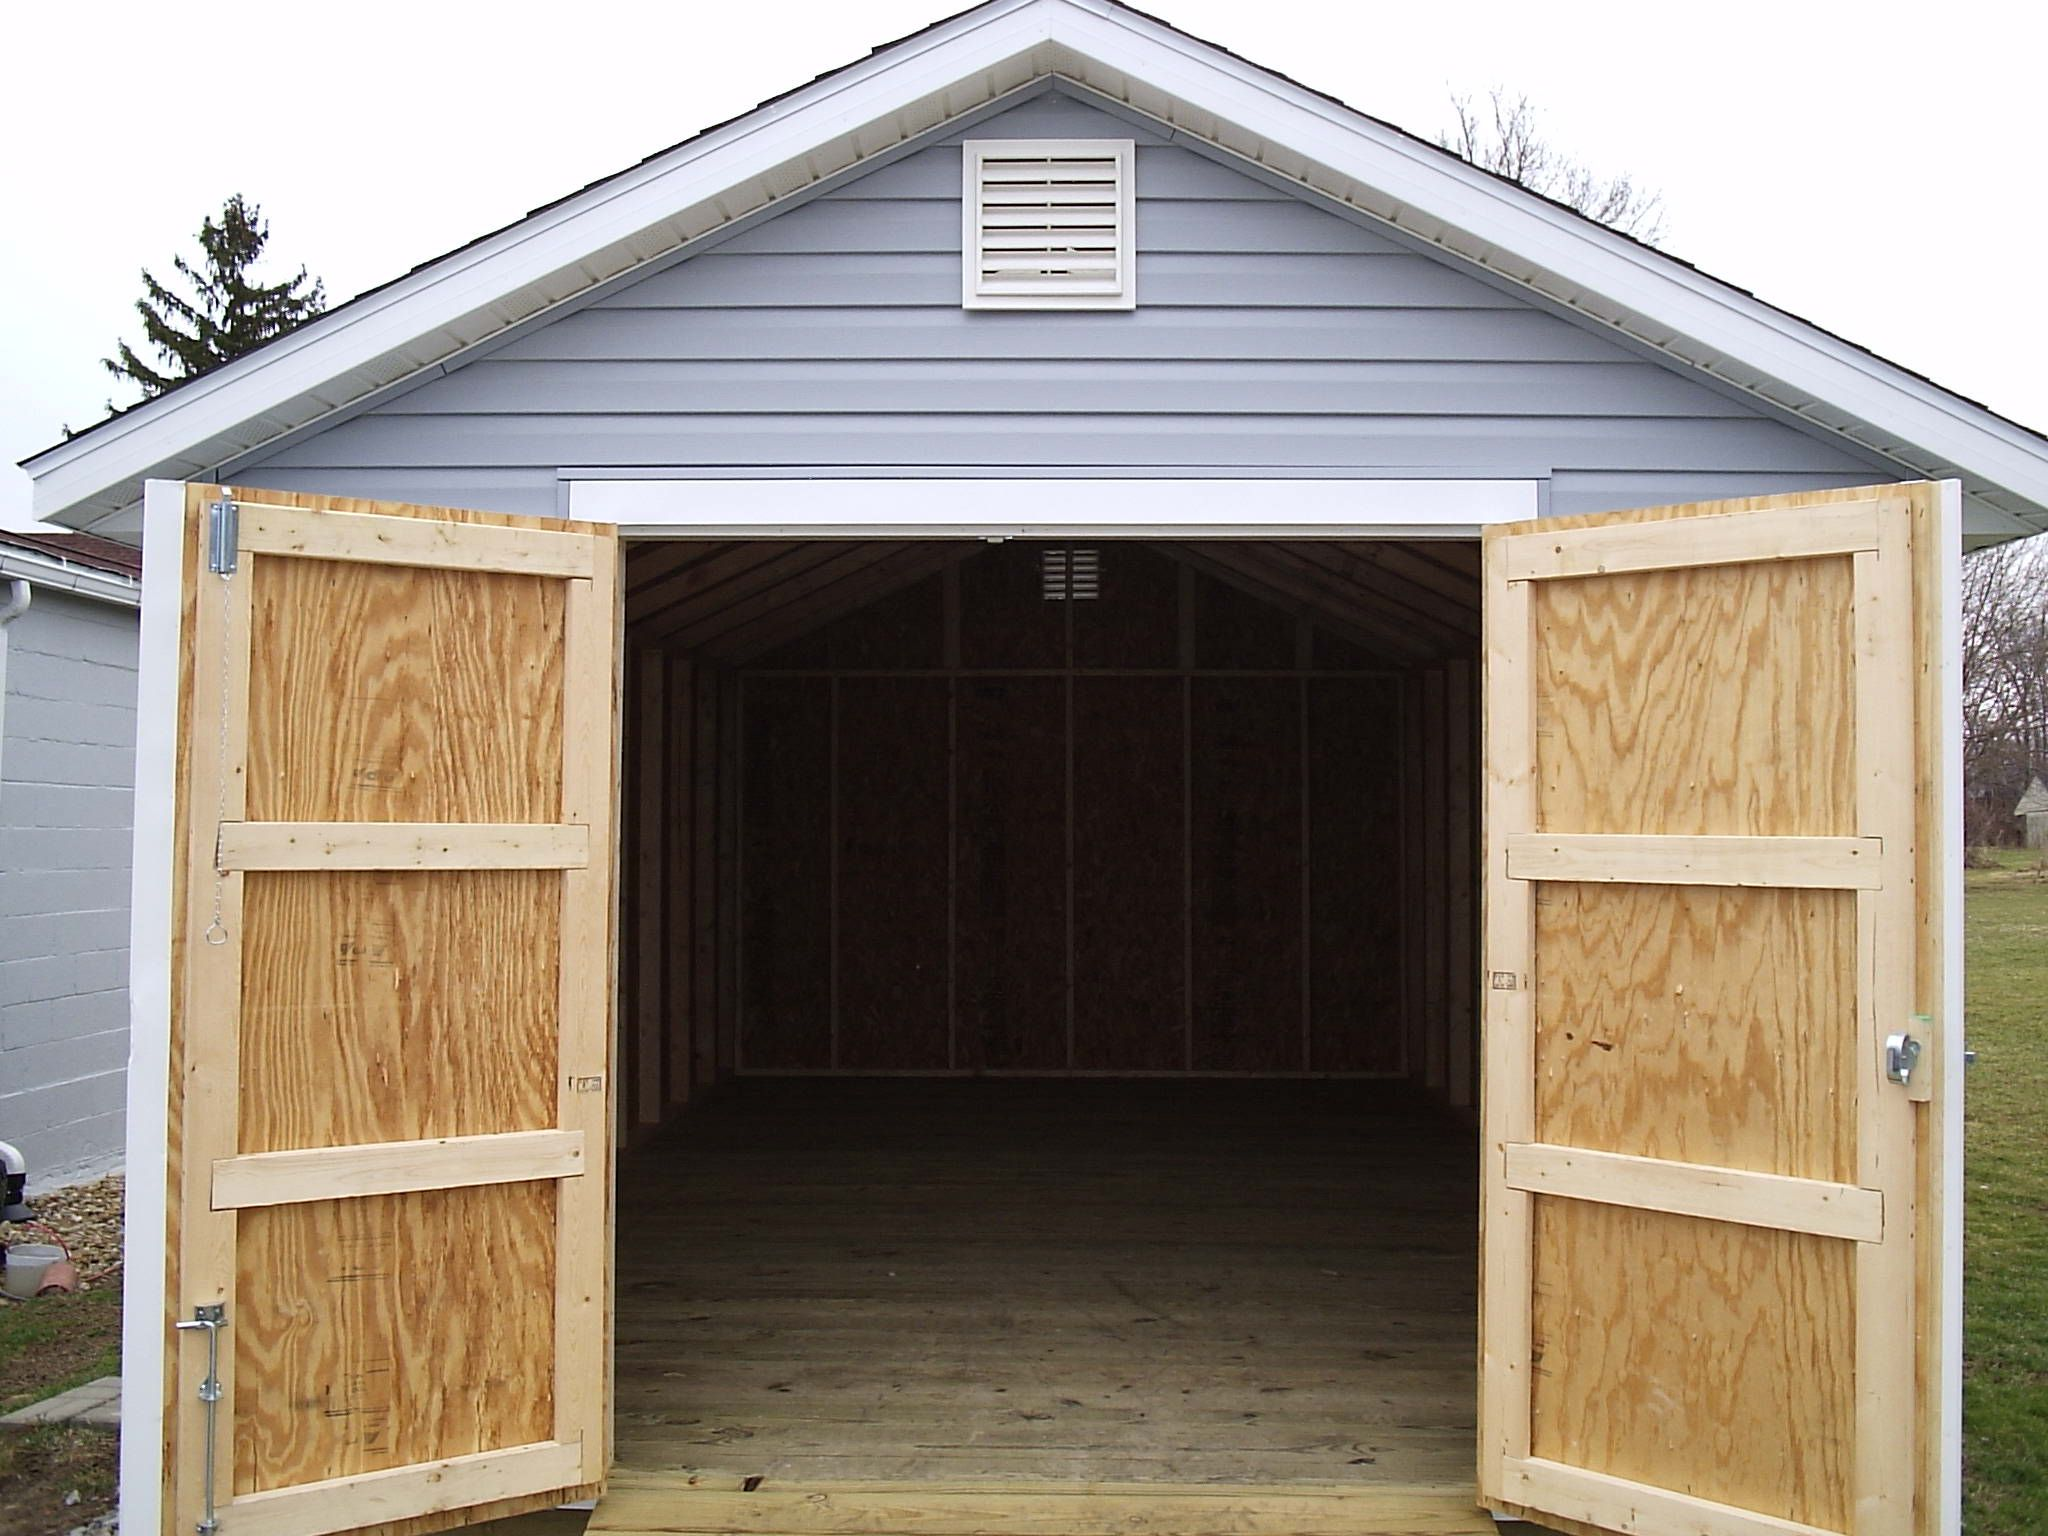 Shed doors deere shed pinterest doors storage and for Wood shed plans